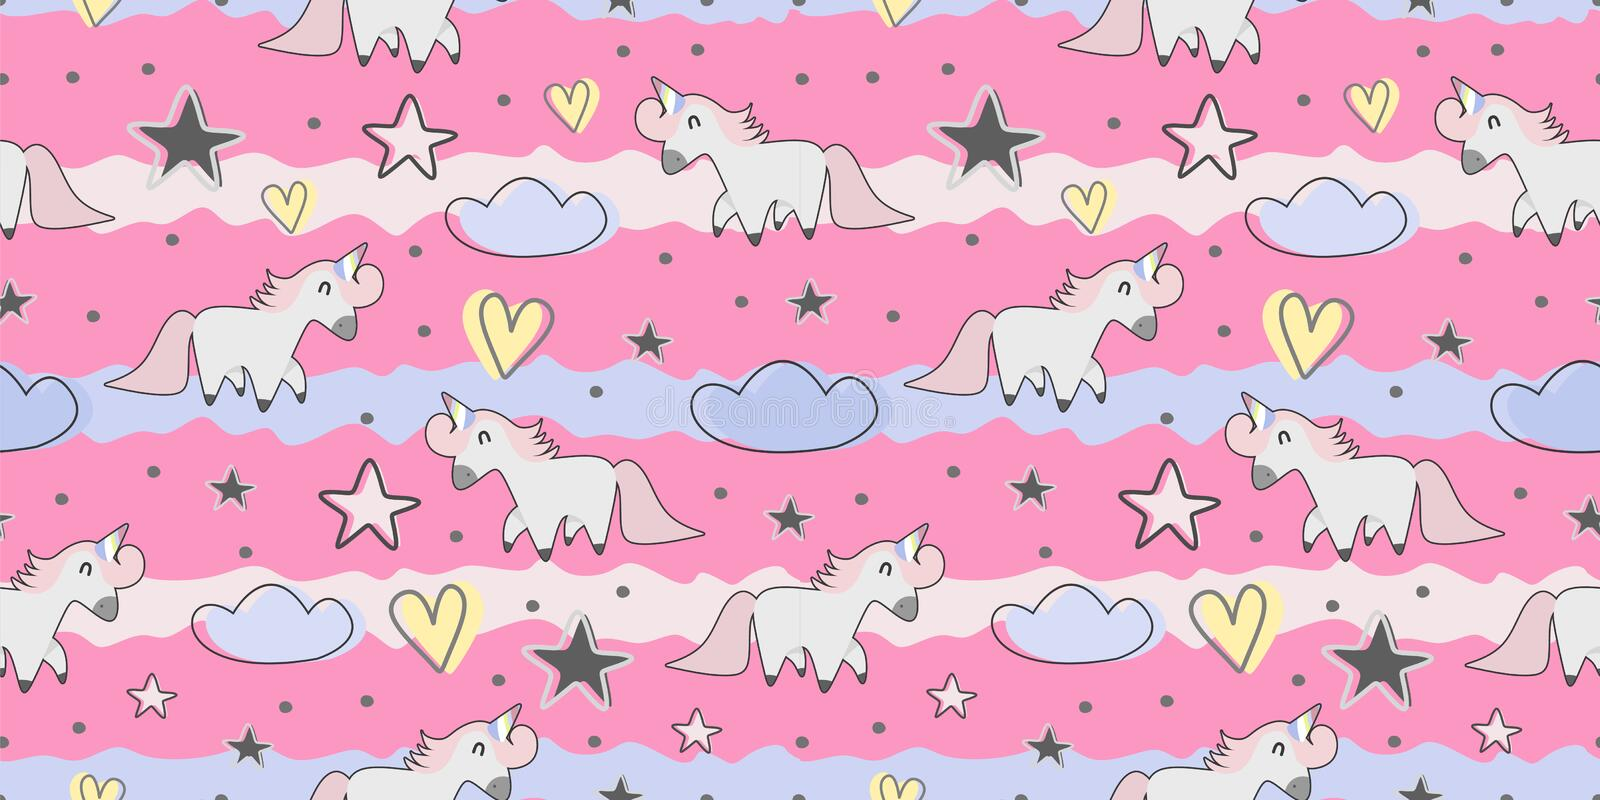 Hand drawn seamless vector pattern with cute unicorns. Repetitive wallpaper on pink background. Perfect for fabric, wallpaper,. Wrapping paper or nursery decor royalty free illustration